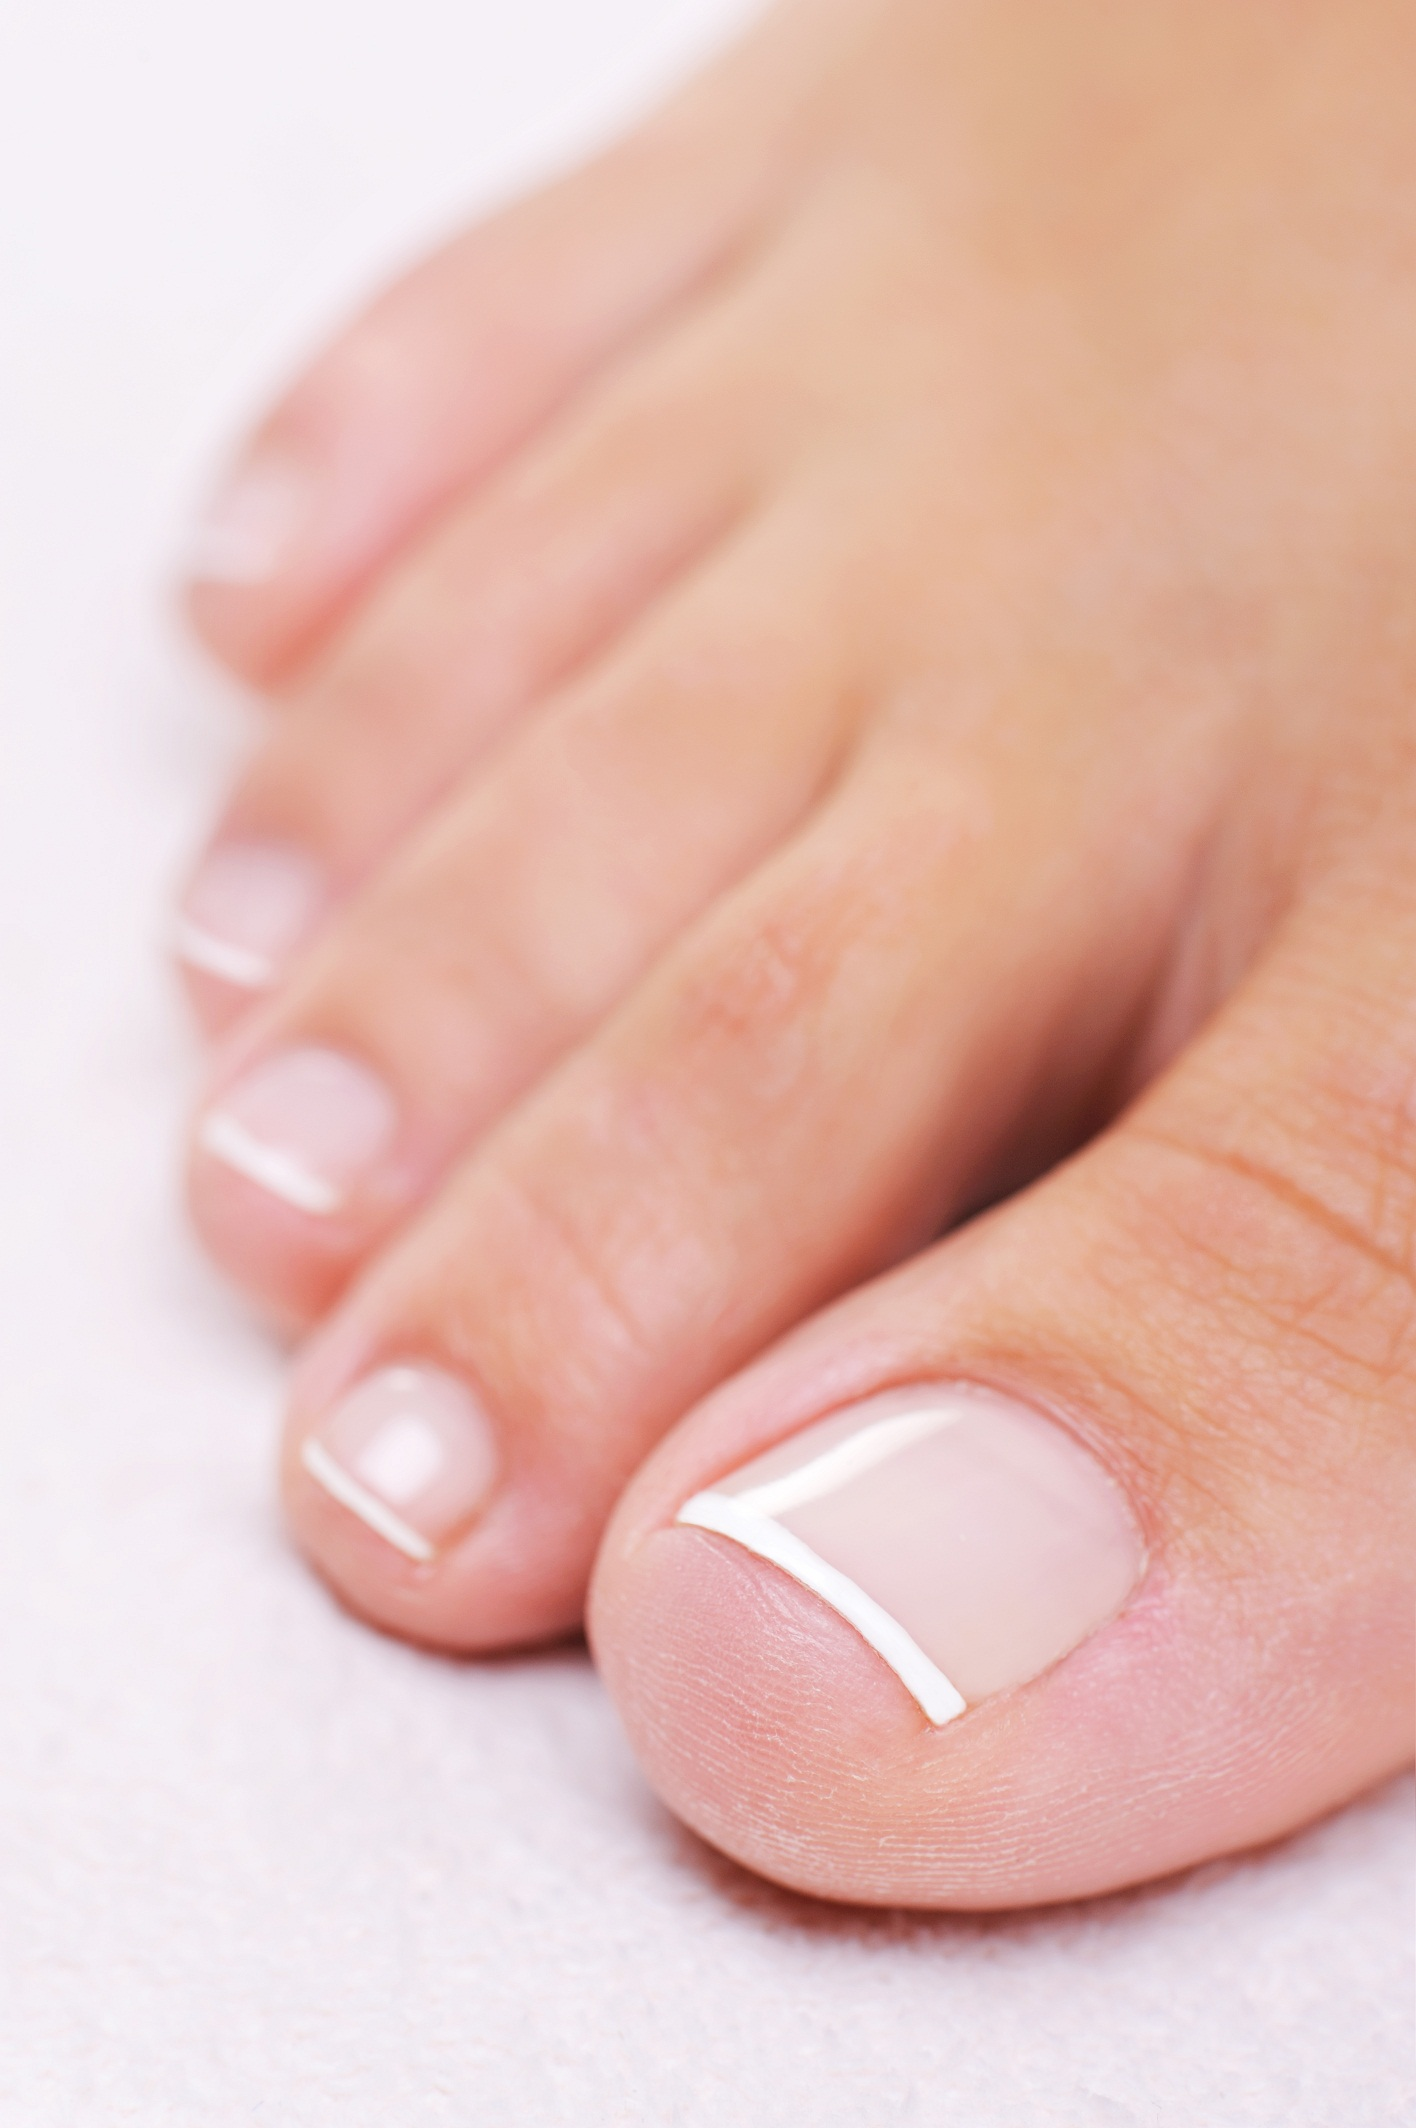 Female foot with a french pedicure